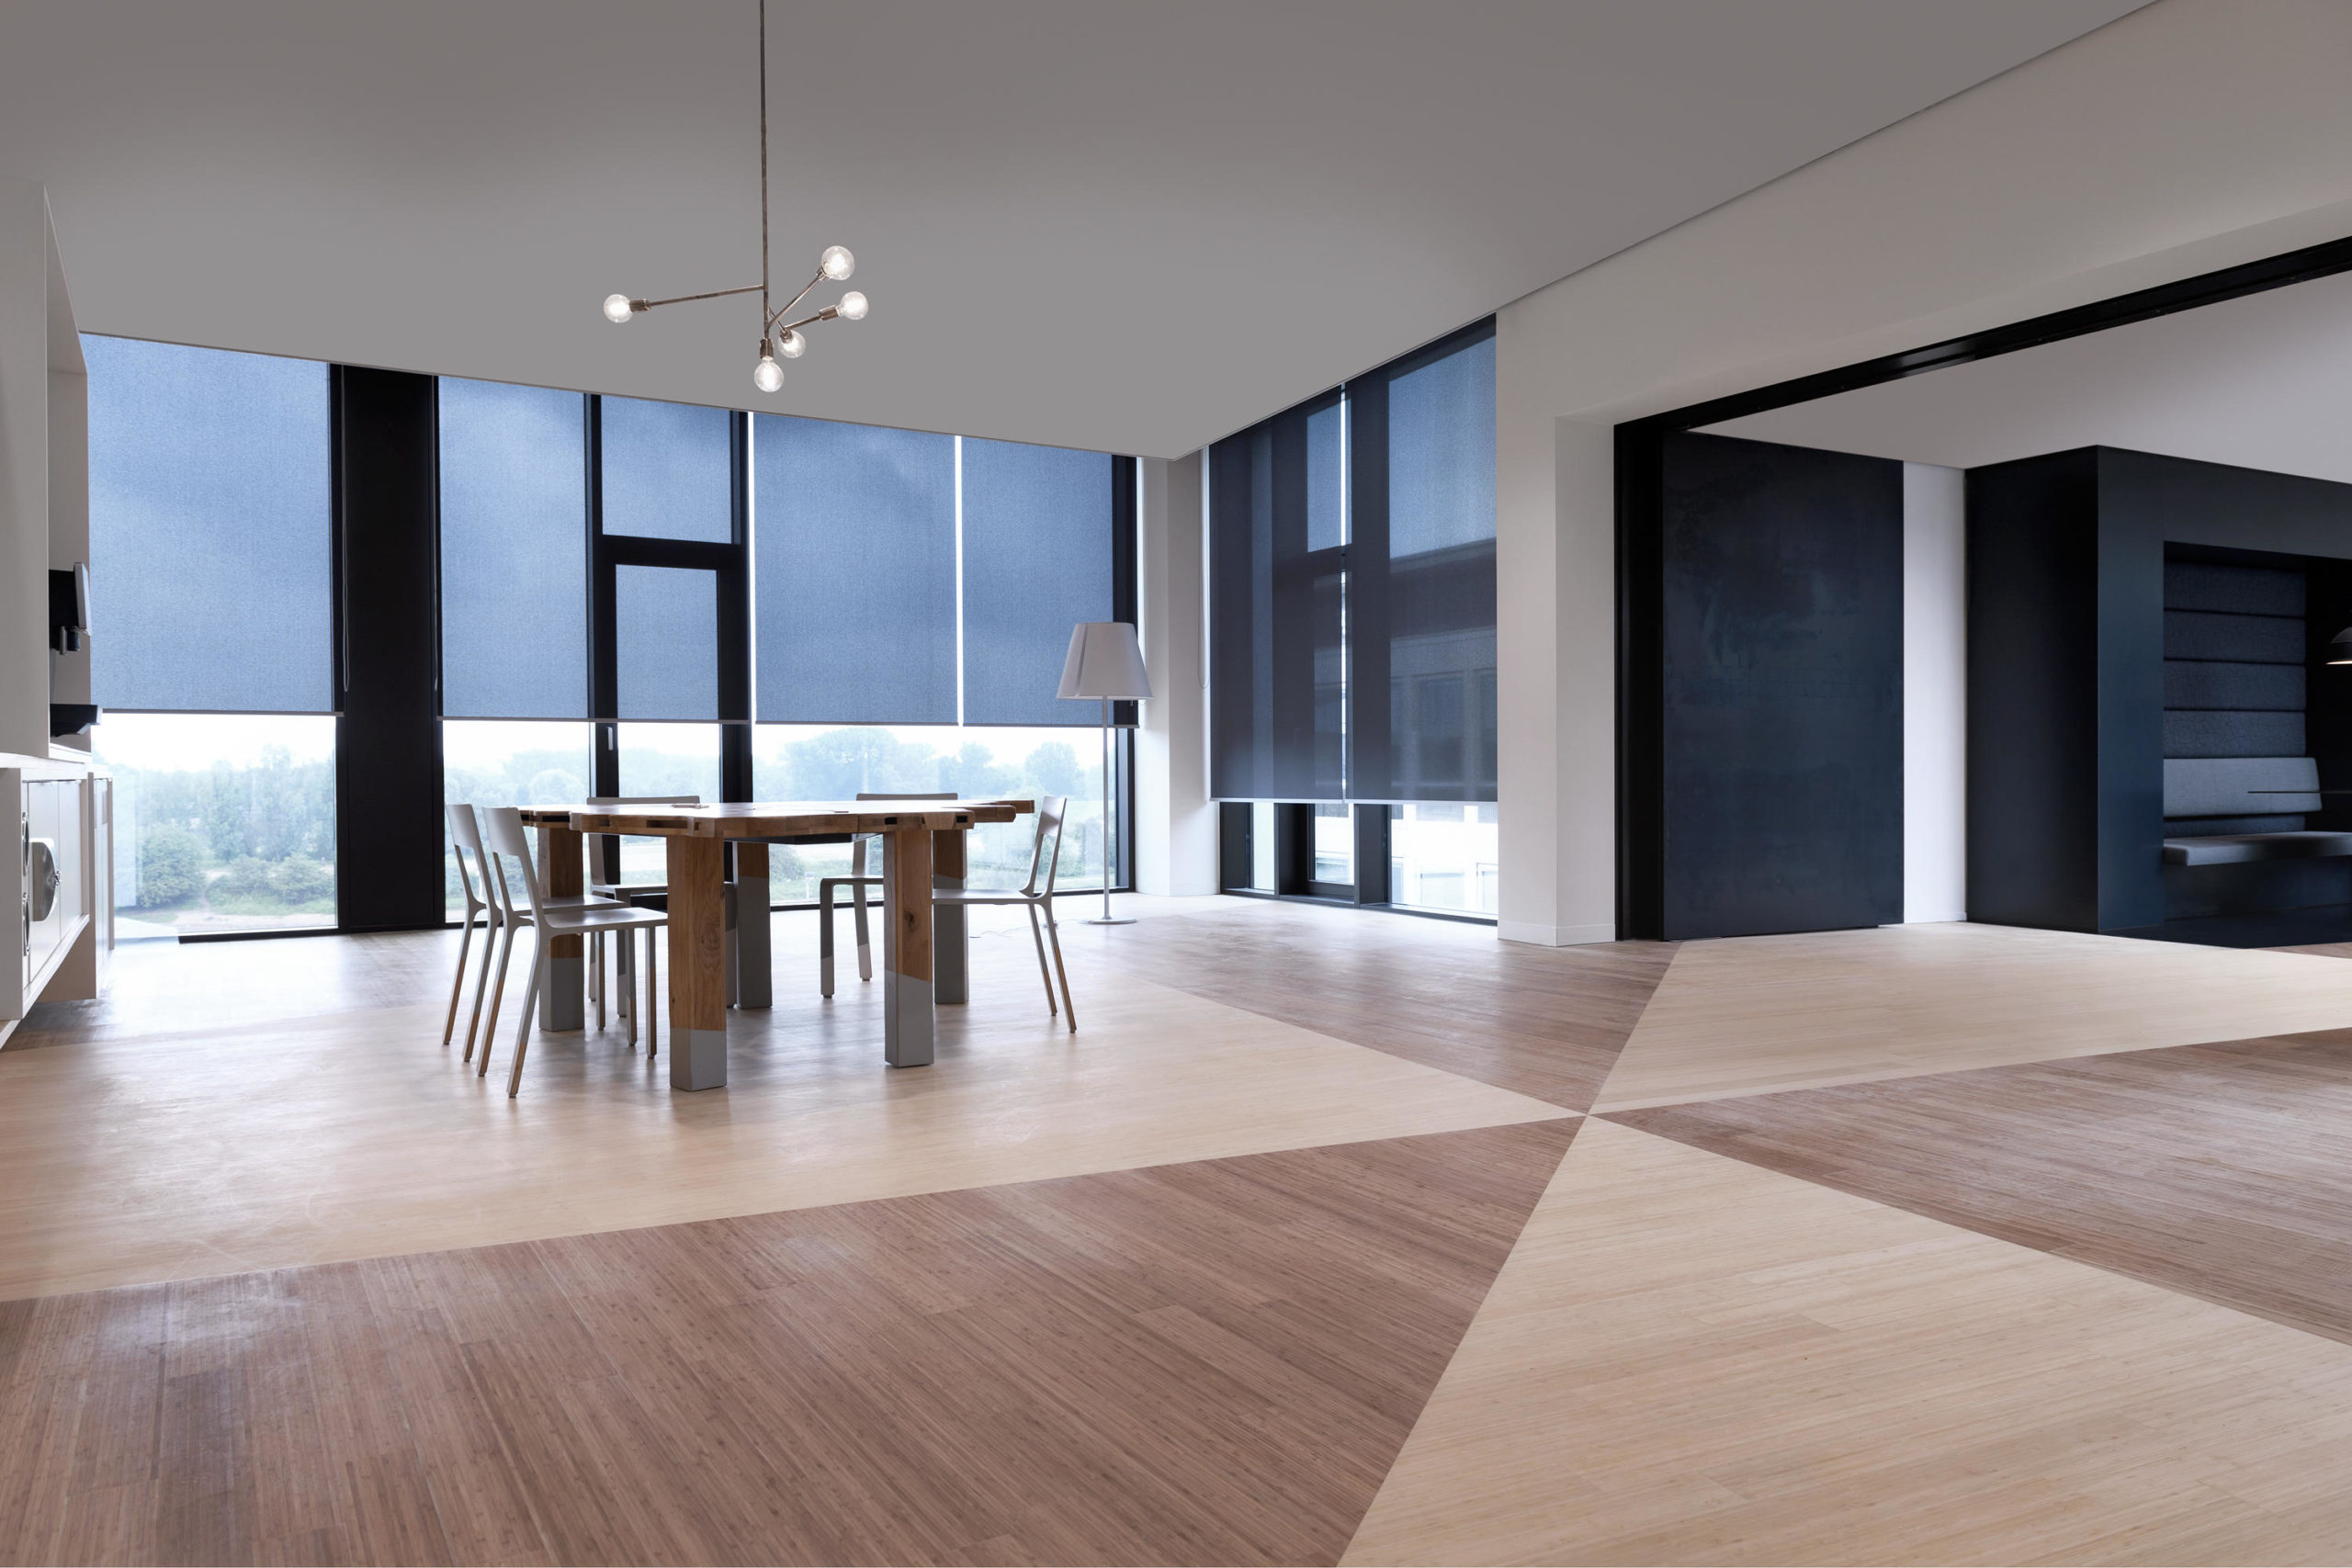 Room with coulisse motorised blinds in Ireland